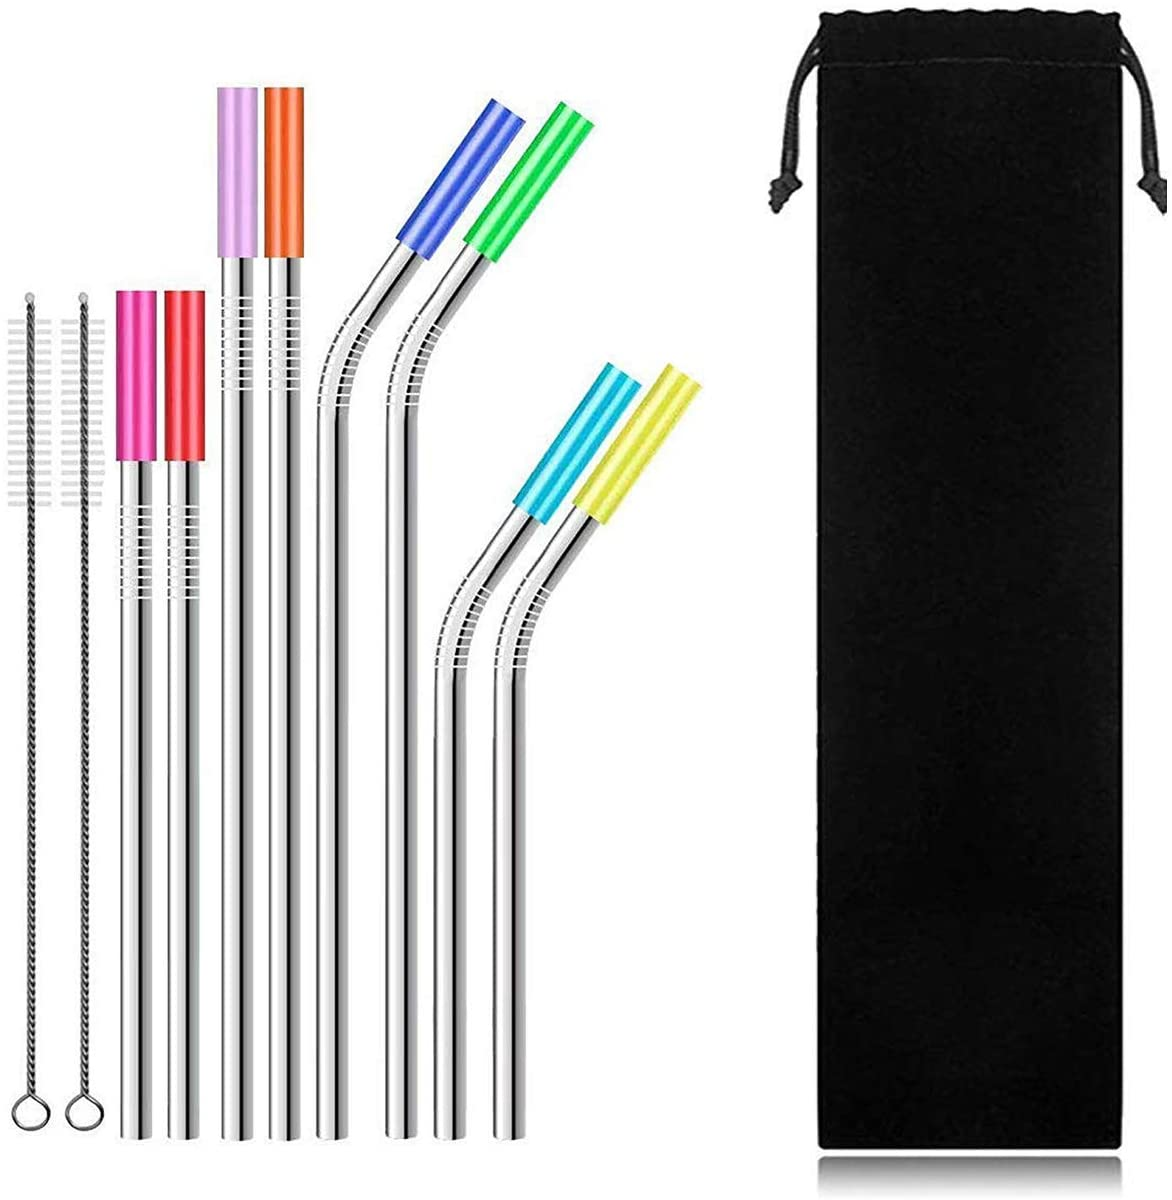 RKINC Set of 8 Stainless Steel Reusable Straws for 30 oz. 20 oz. tumblers, Eco friendly Long Drinking Metal Straws 4 Straight and 4 Curve with Silicone Tip and 2 Brush, 1 Bag (Silver)